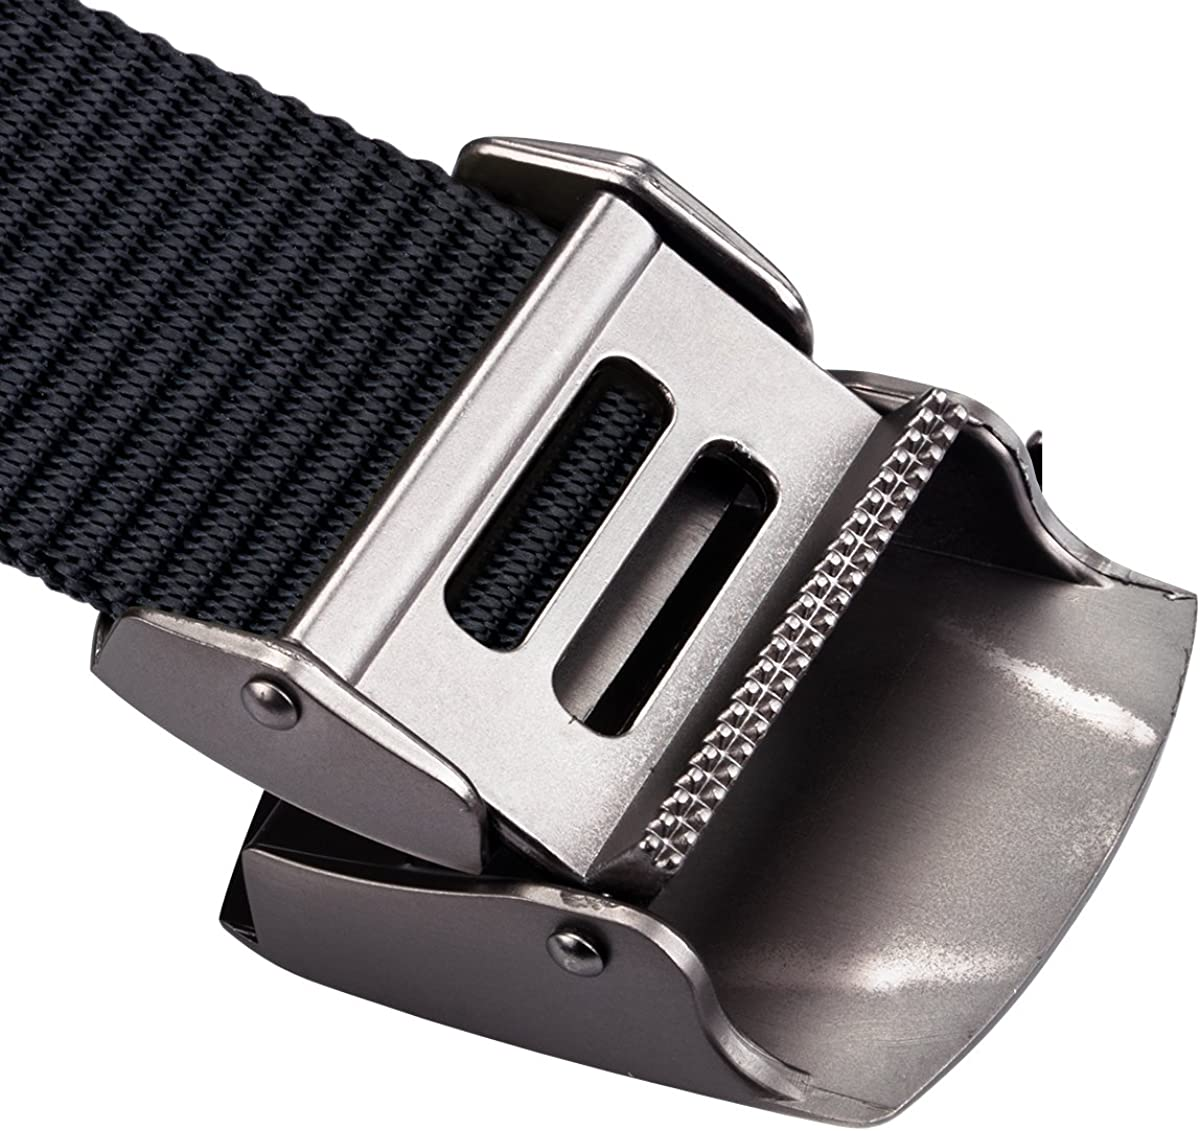 Barry.Wang Mens Tactical Belts Military Style Shooters Nylon Belts with Metal Buckle